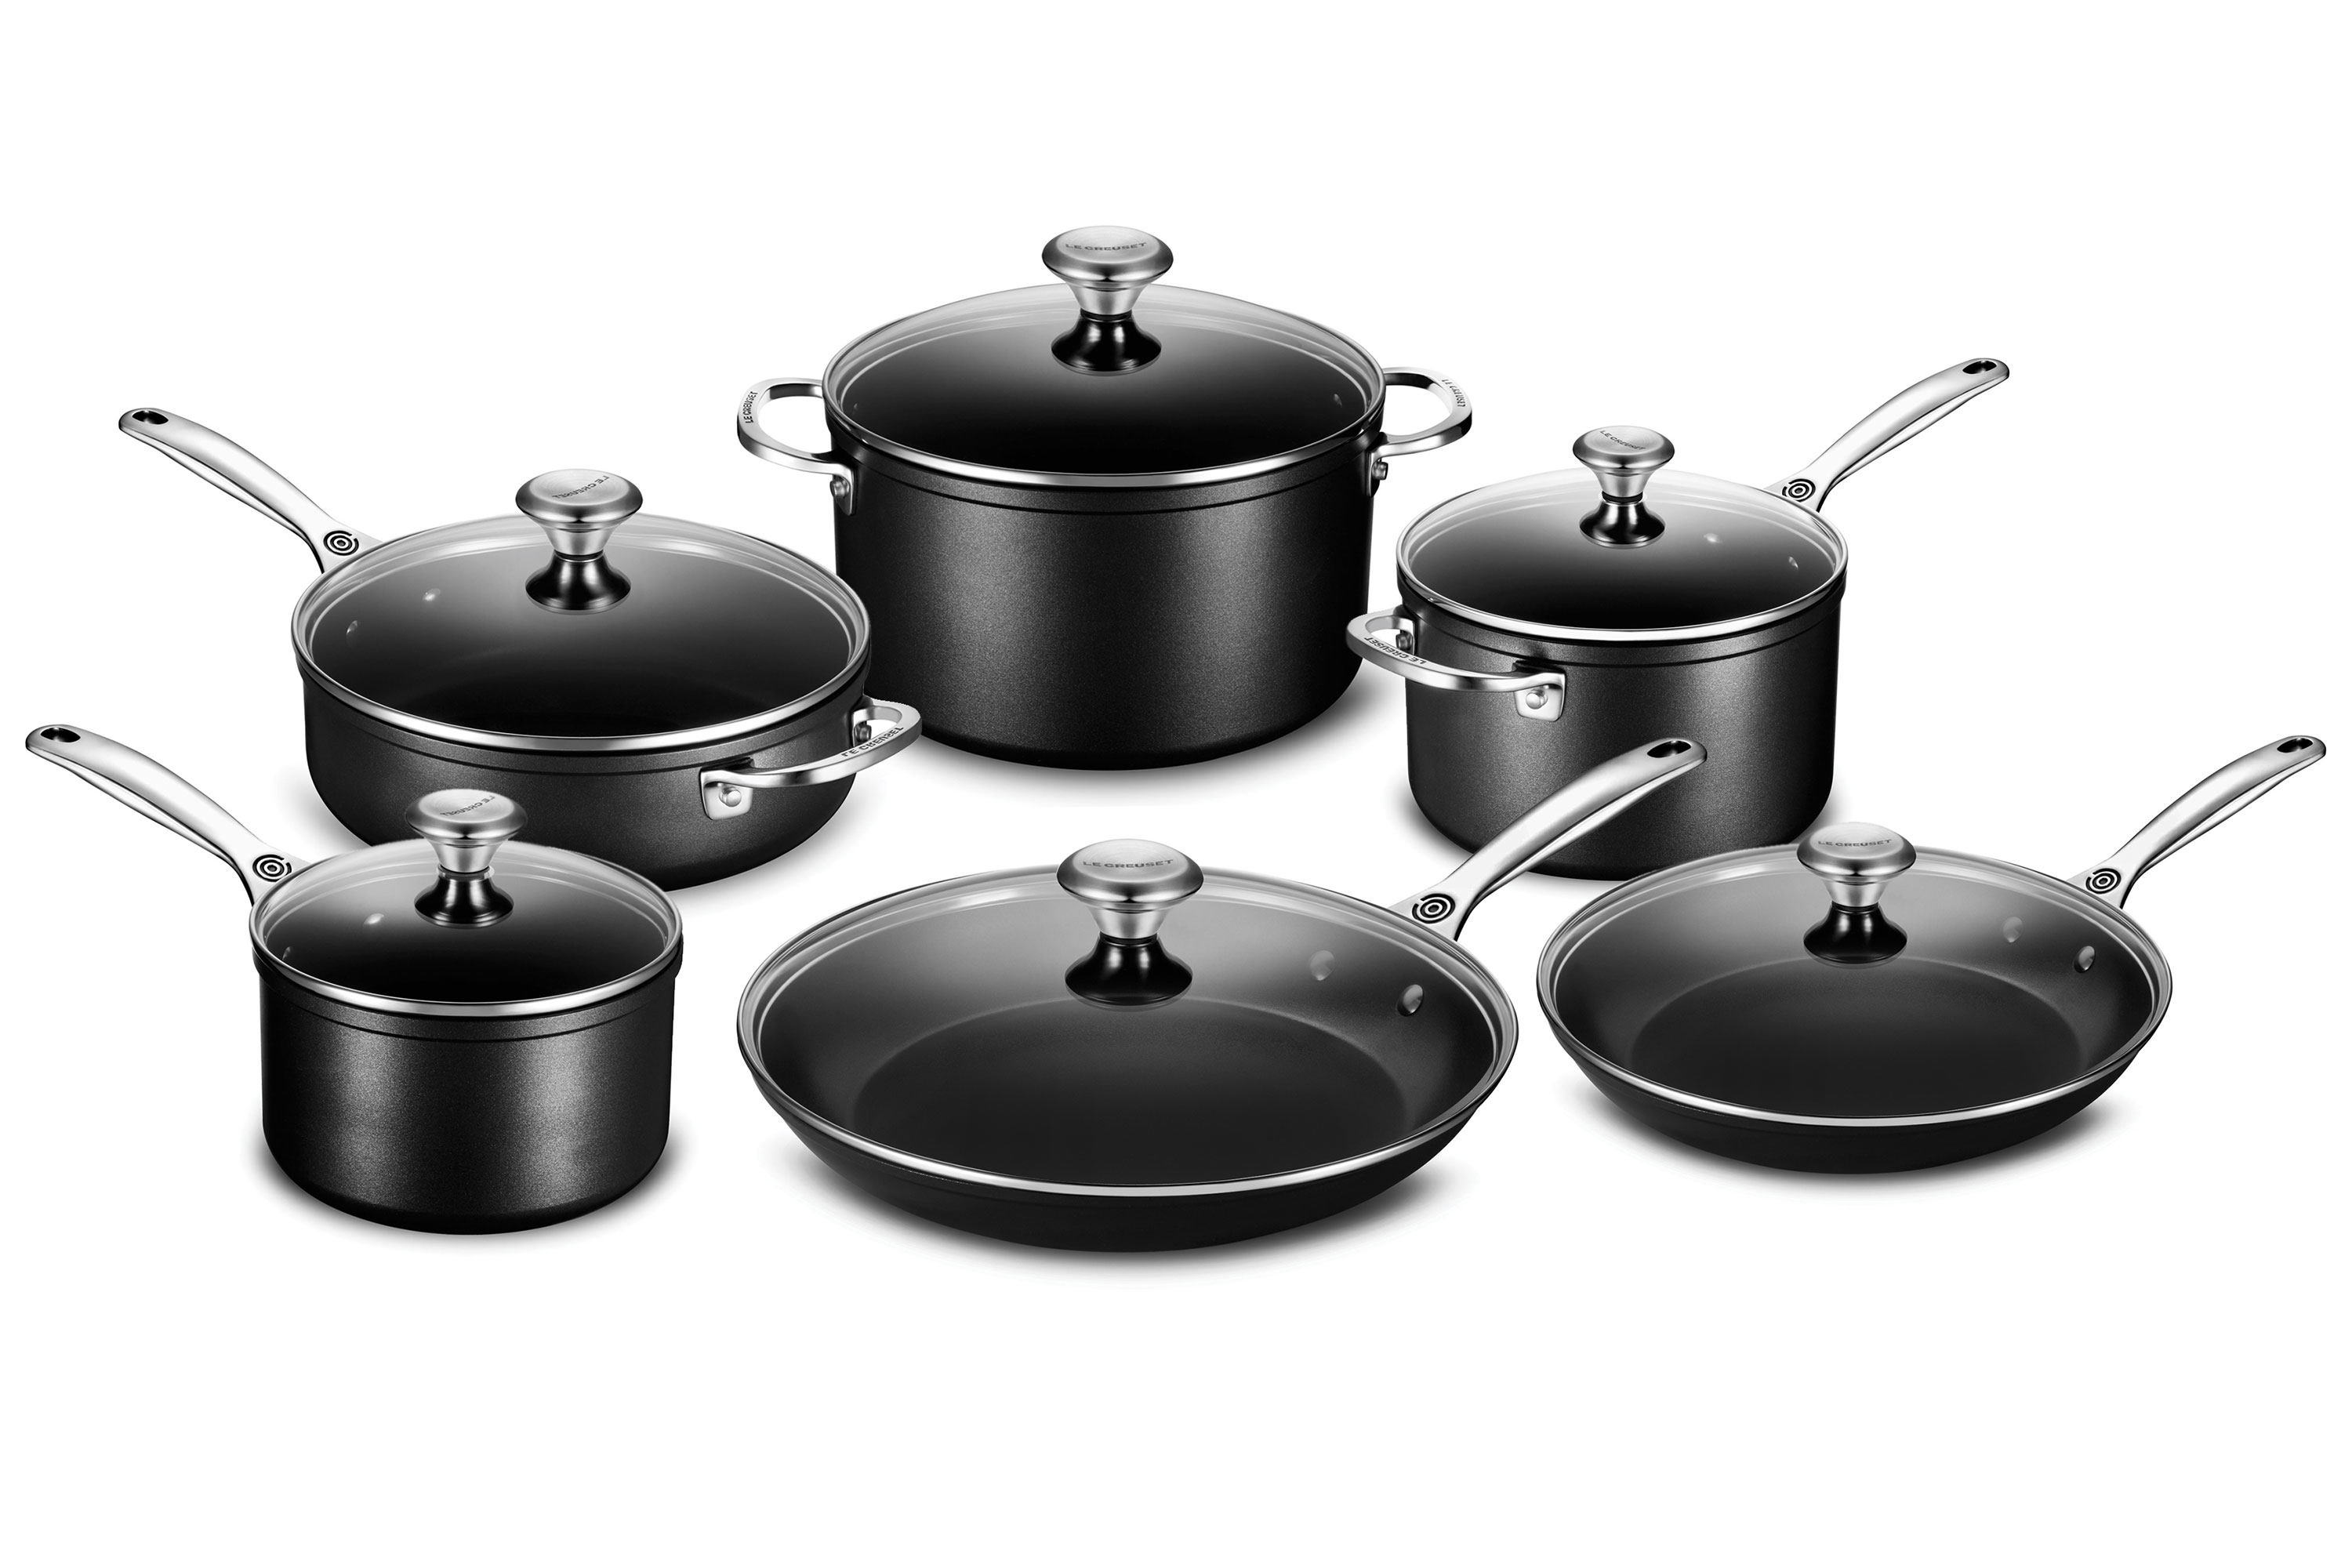 le creuset toughened nonstick cookware set 12 piece. Black Bedroom Furniture Sets. Home Design Ideas